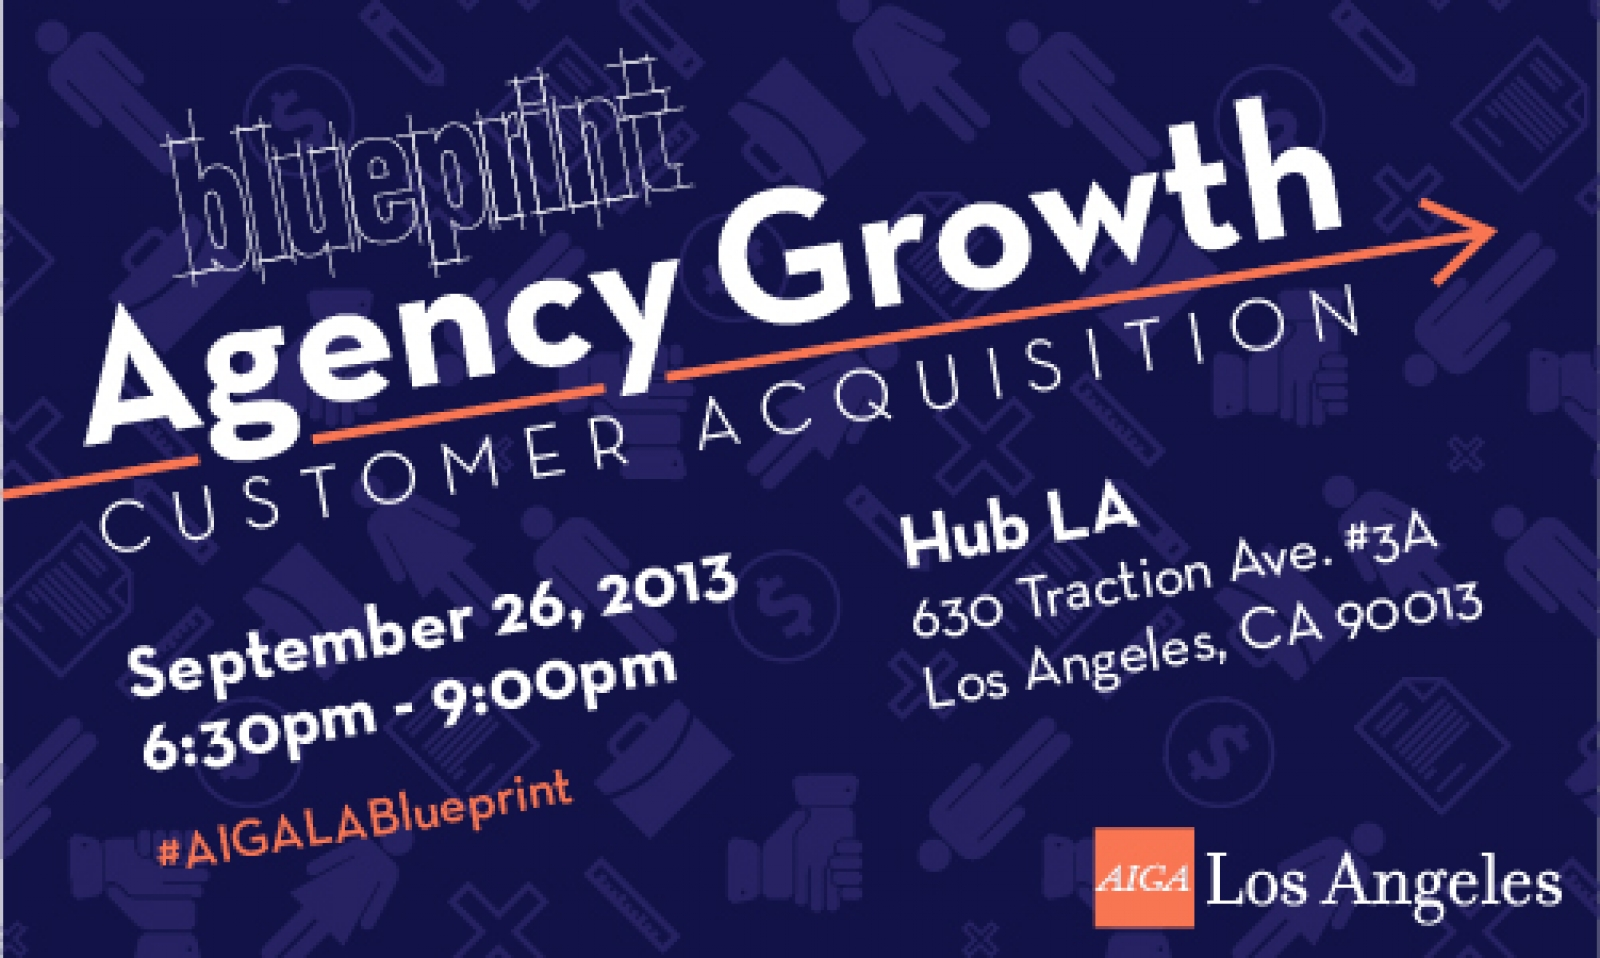 Blueprint agency growth customer aquisition aiga los angeles event image malvernweather Images